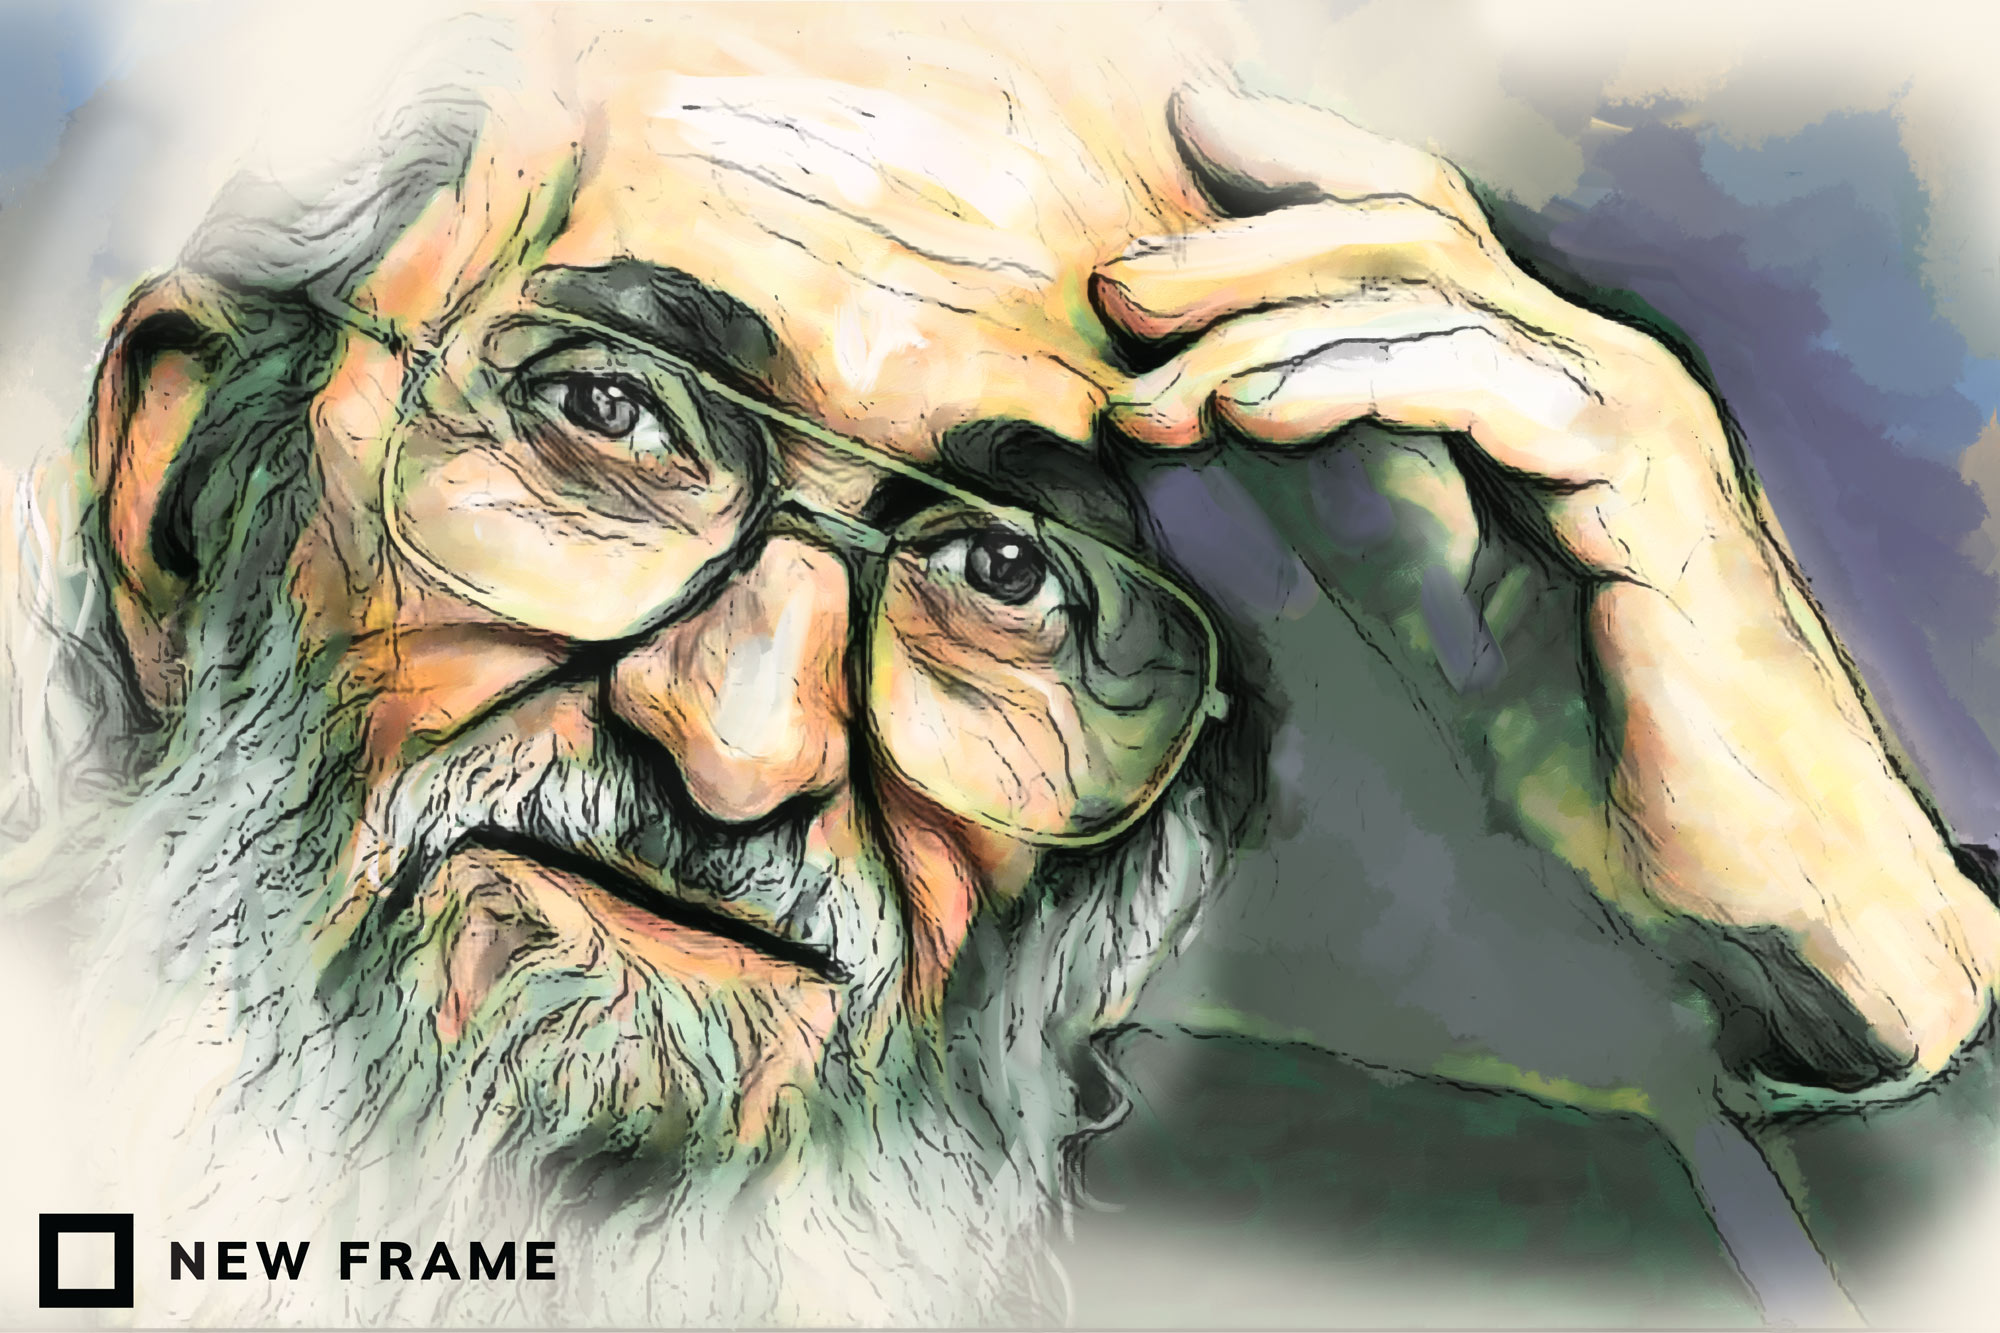 Paulo Freire And Popular Struggle In South Africa photo